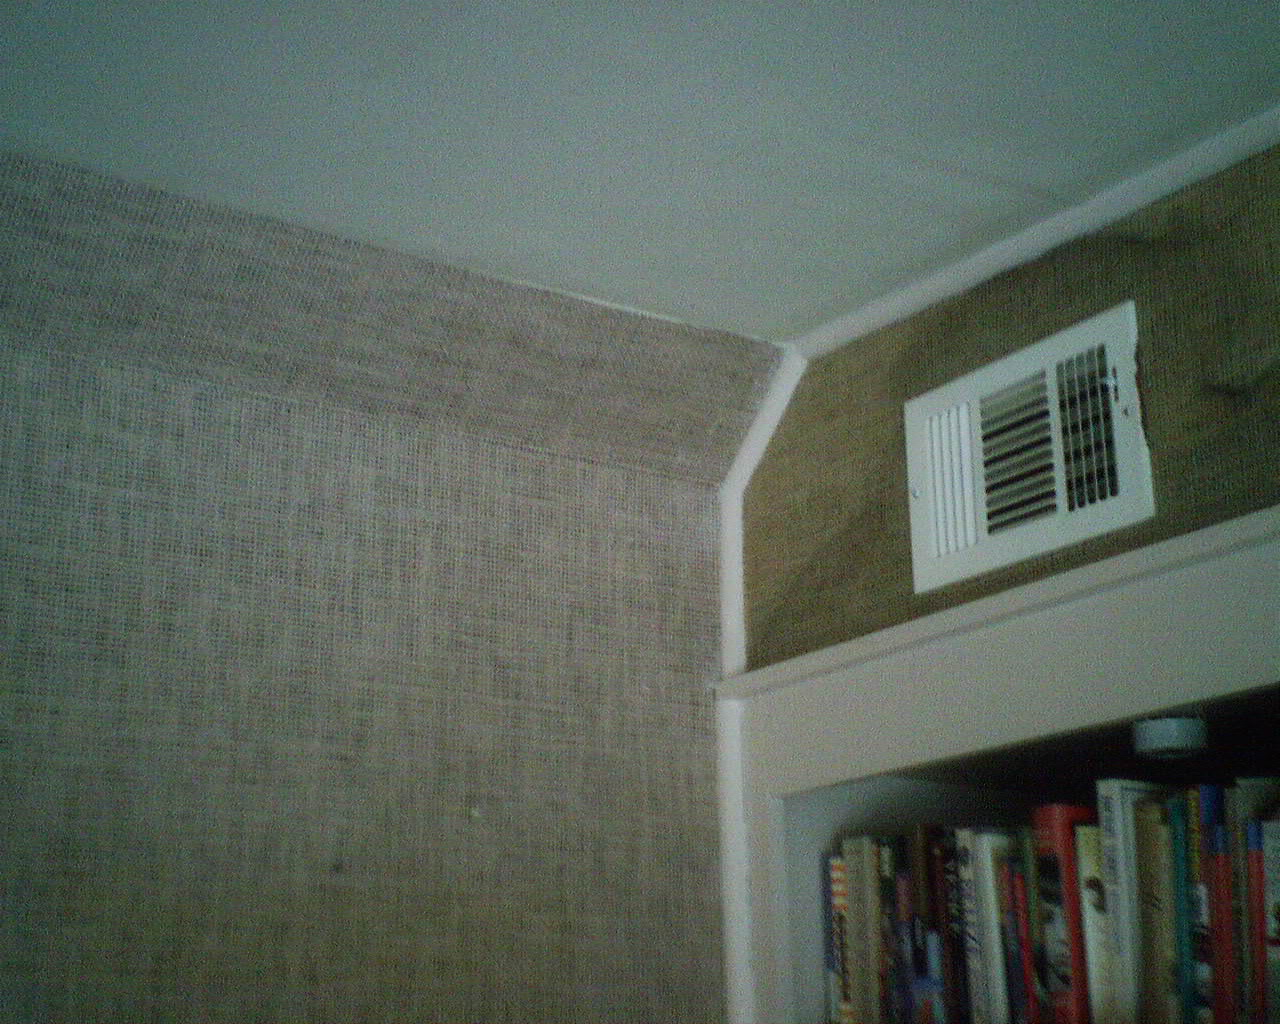 Painting over grasscloth wallpaper - Grasscloth Wallpaper Fading Over Time